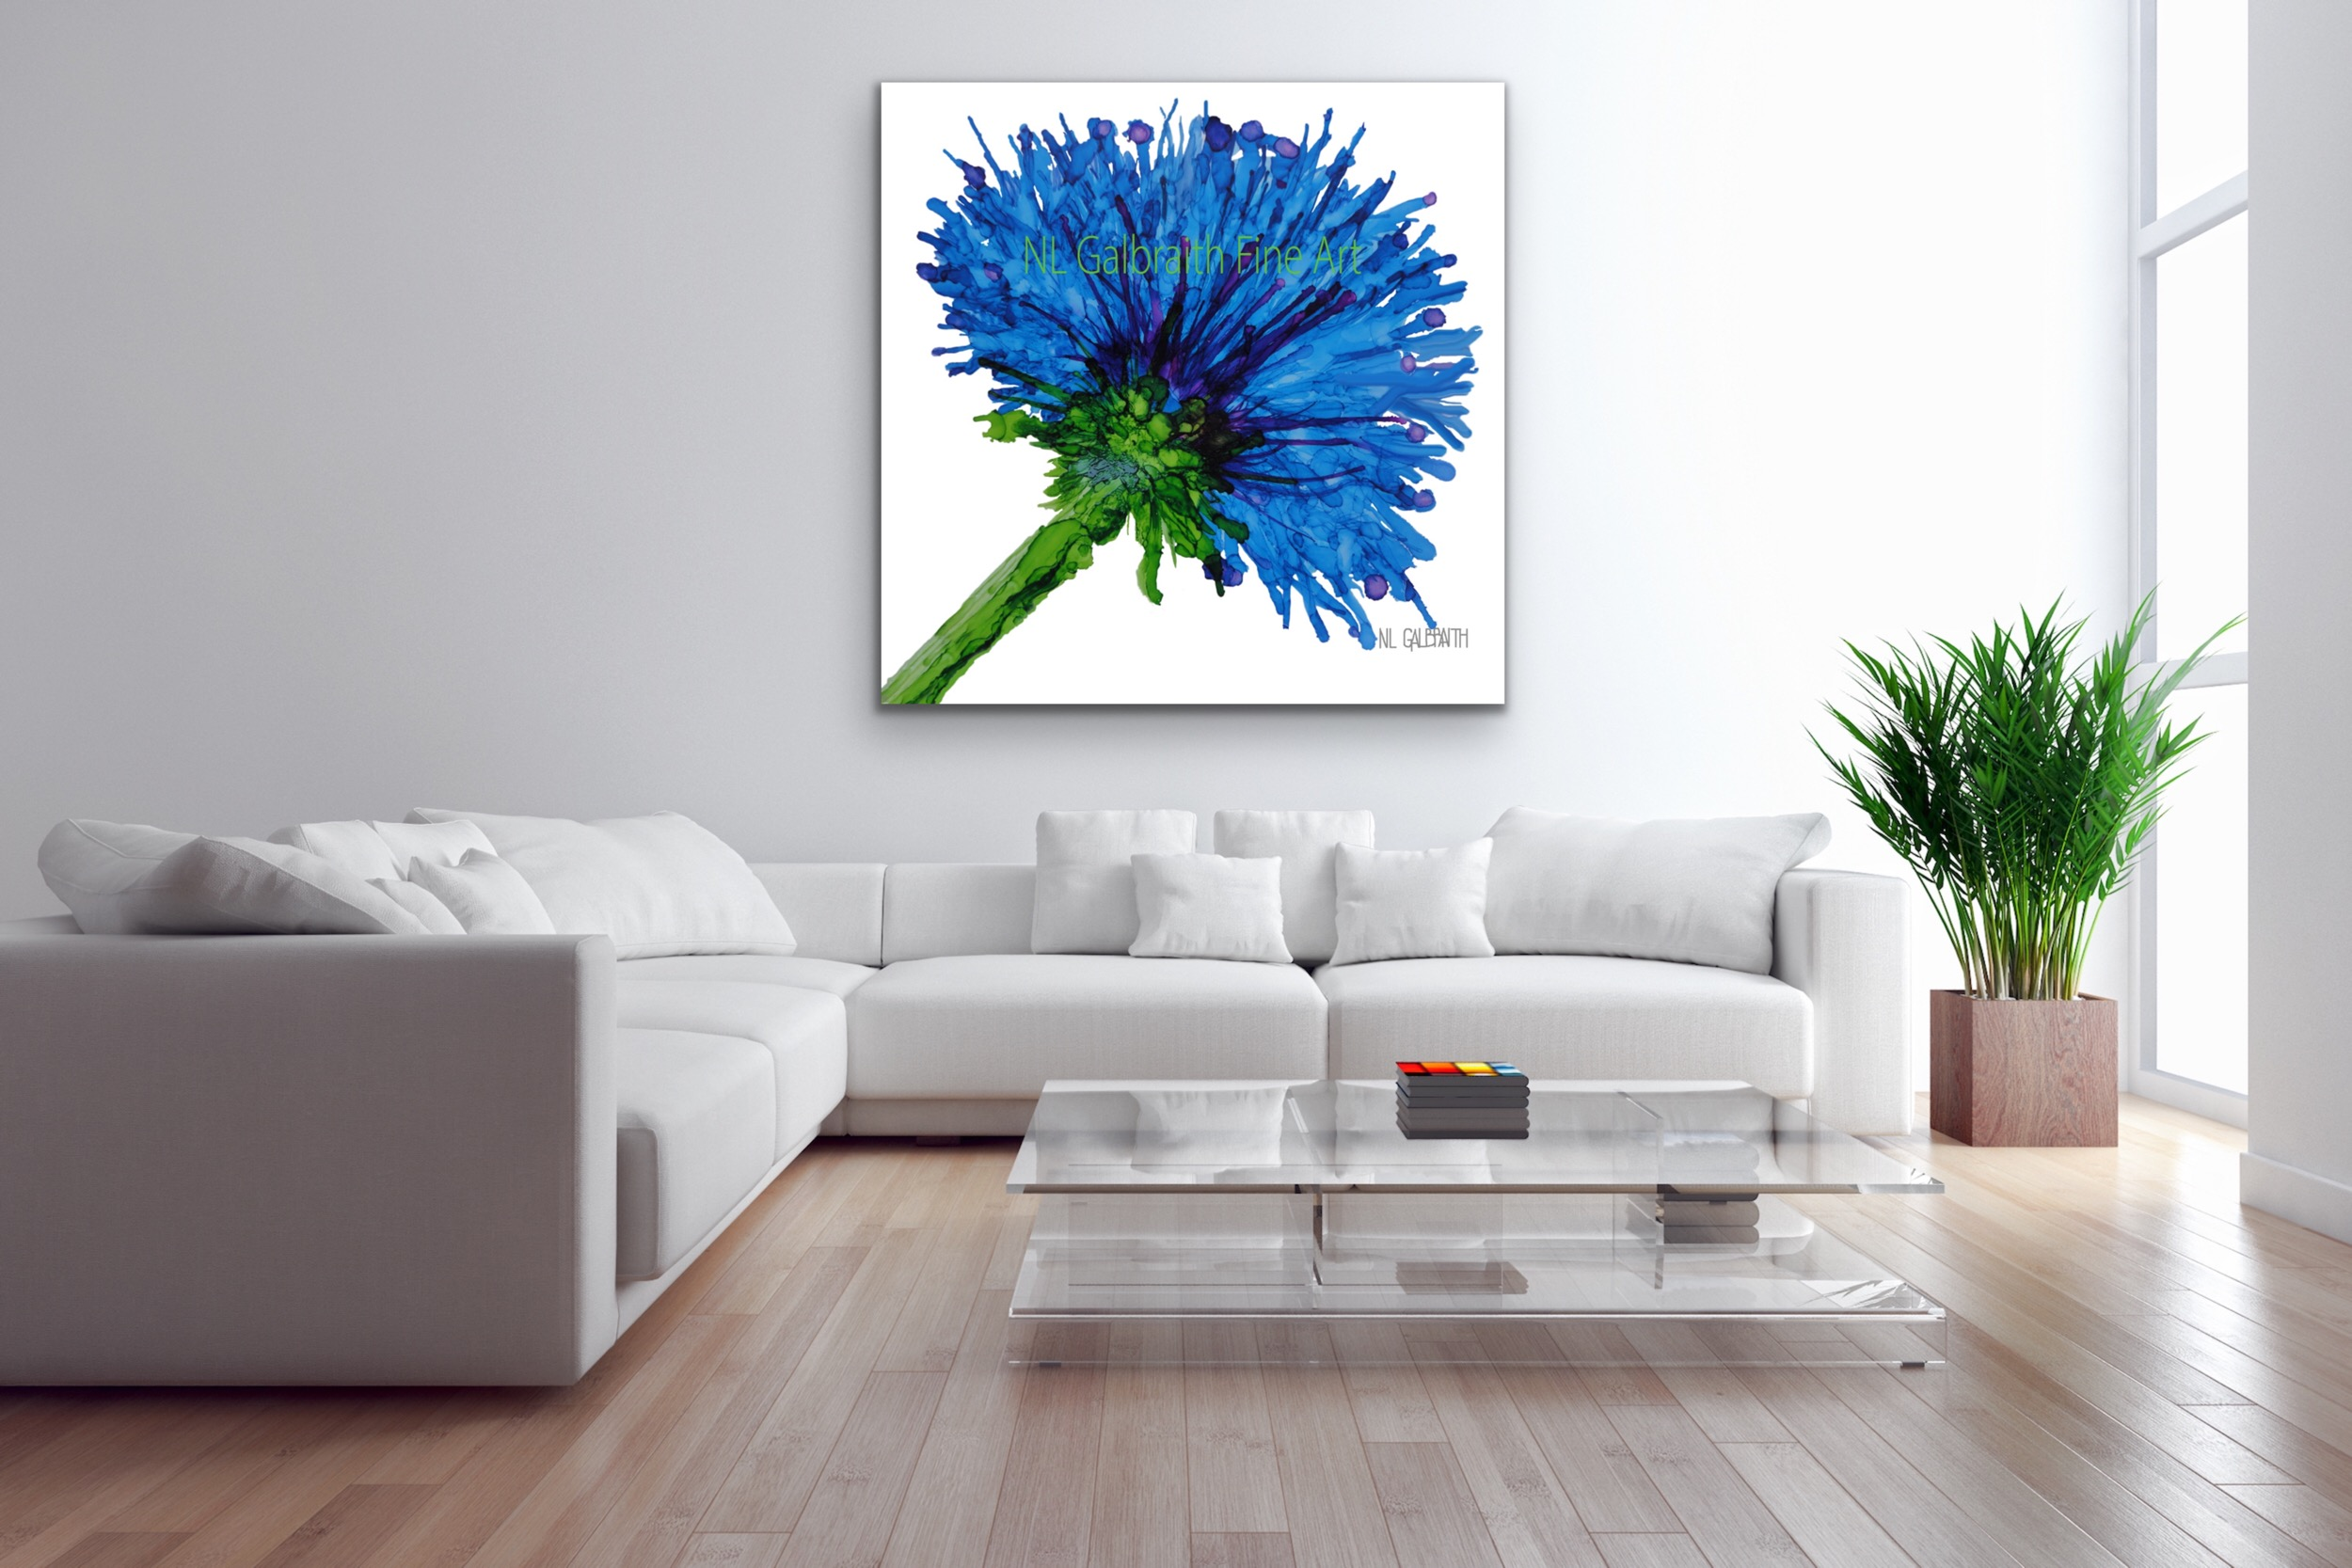 Fine Art Blue Flower Oversized Graphic Over a White Sectional with Tall Ceilings